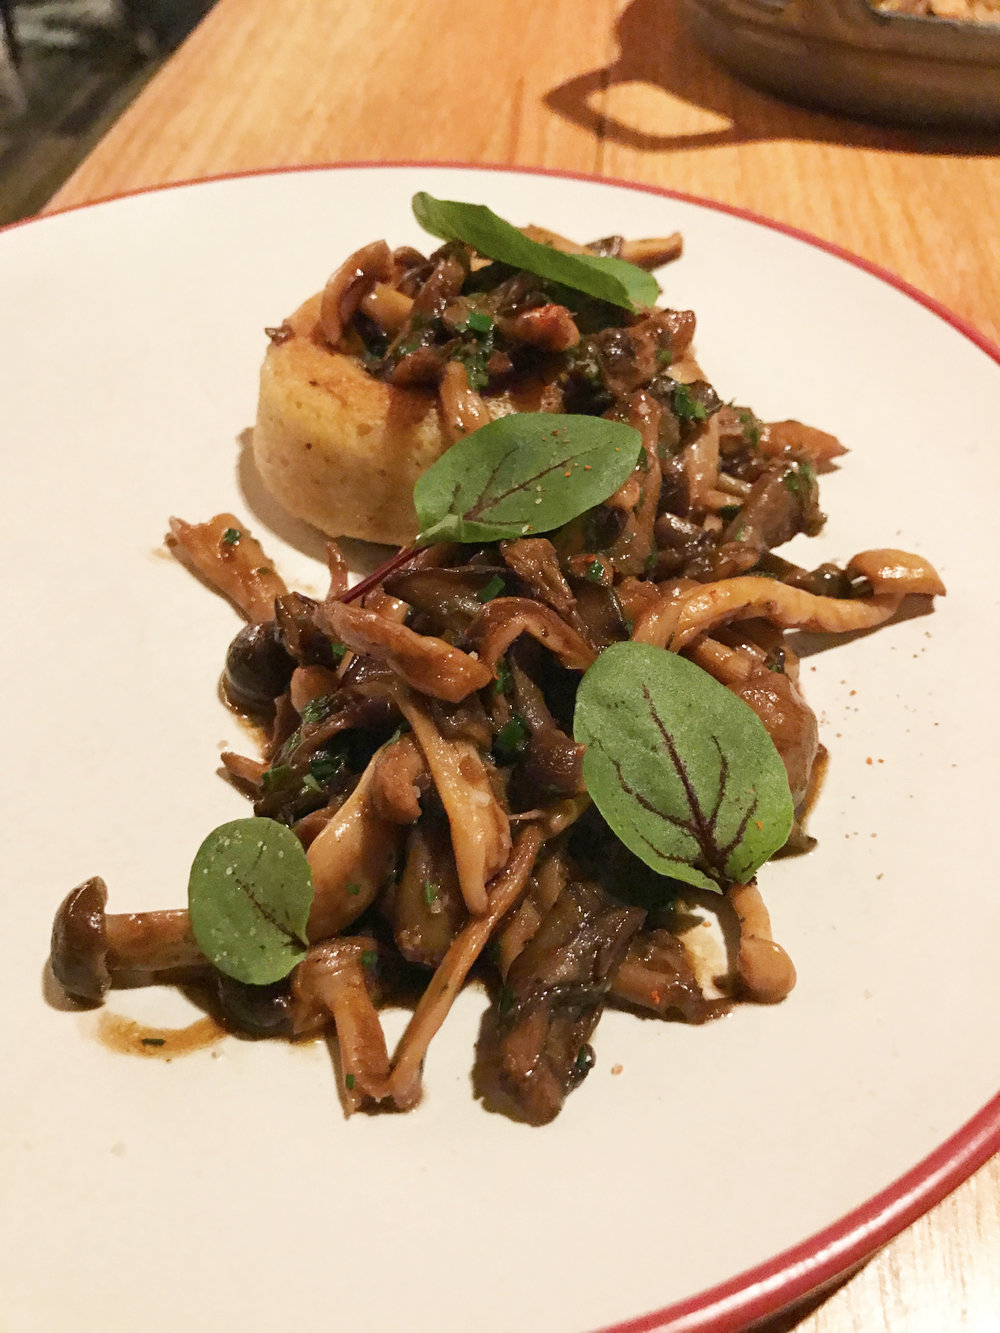 Mushrooms with black garlic, chile de arbol, verdolaga, and griddled masa